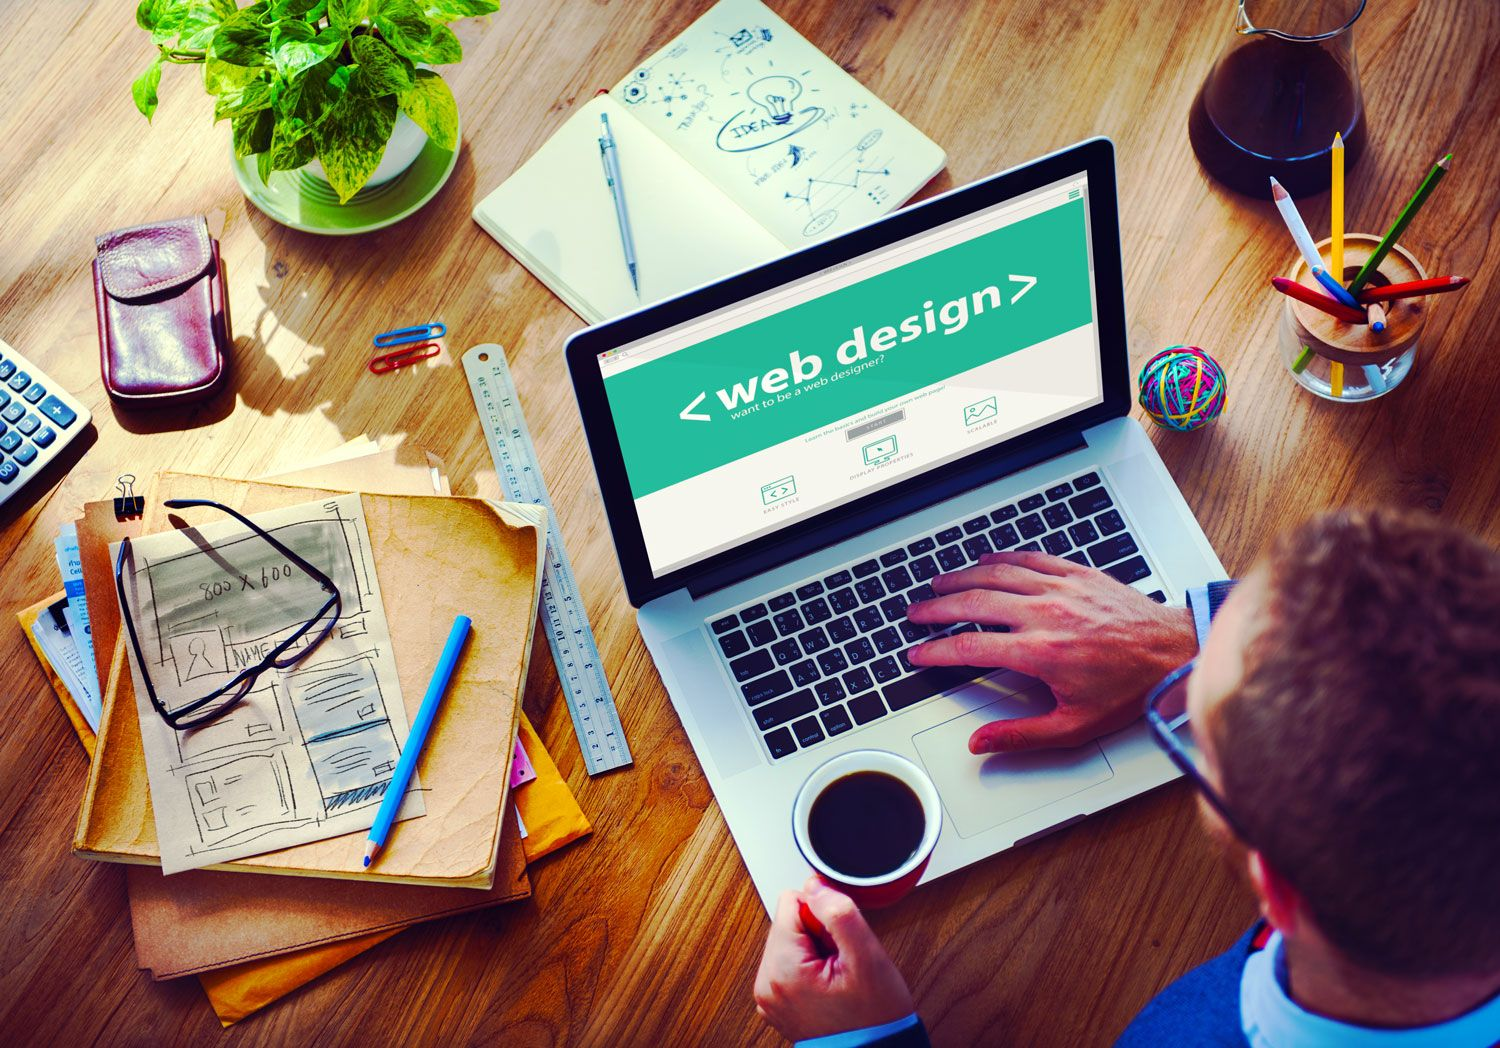 Web Design Has Now Become The Most Important Thing In This Digital Era So It Is Considered As A Good Career Choi Web Design Company Website Design Job Search